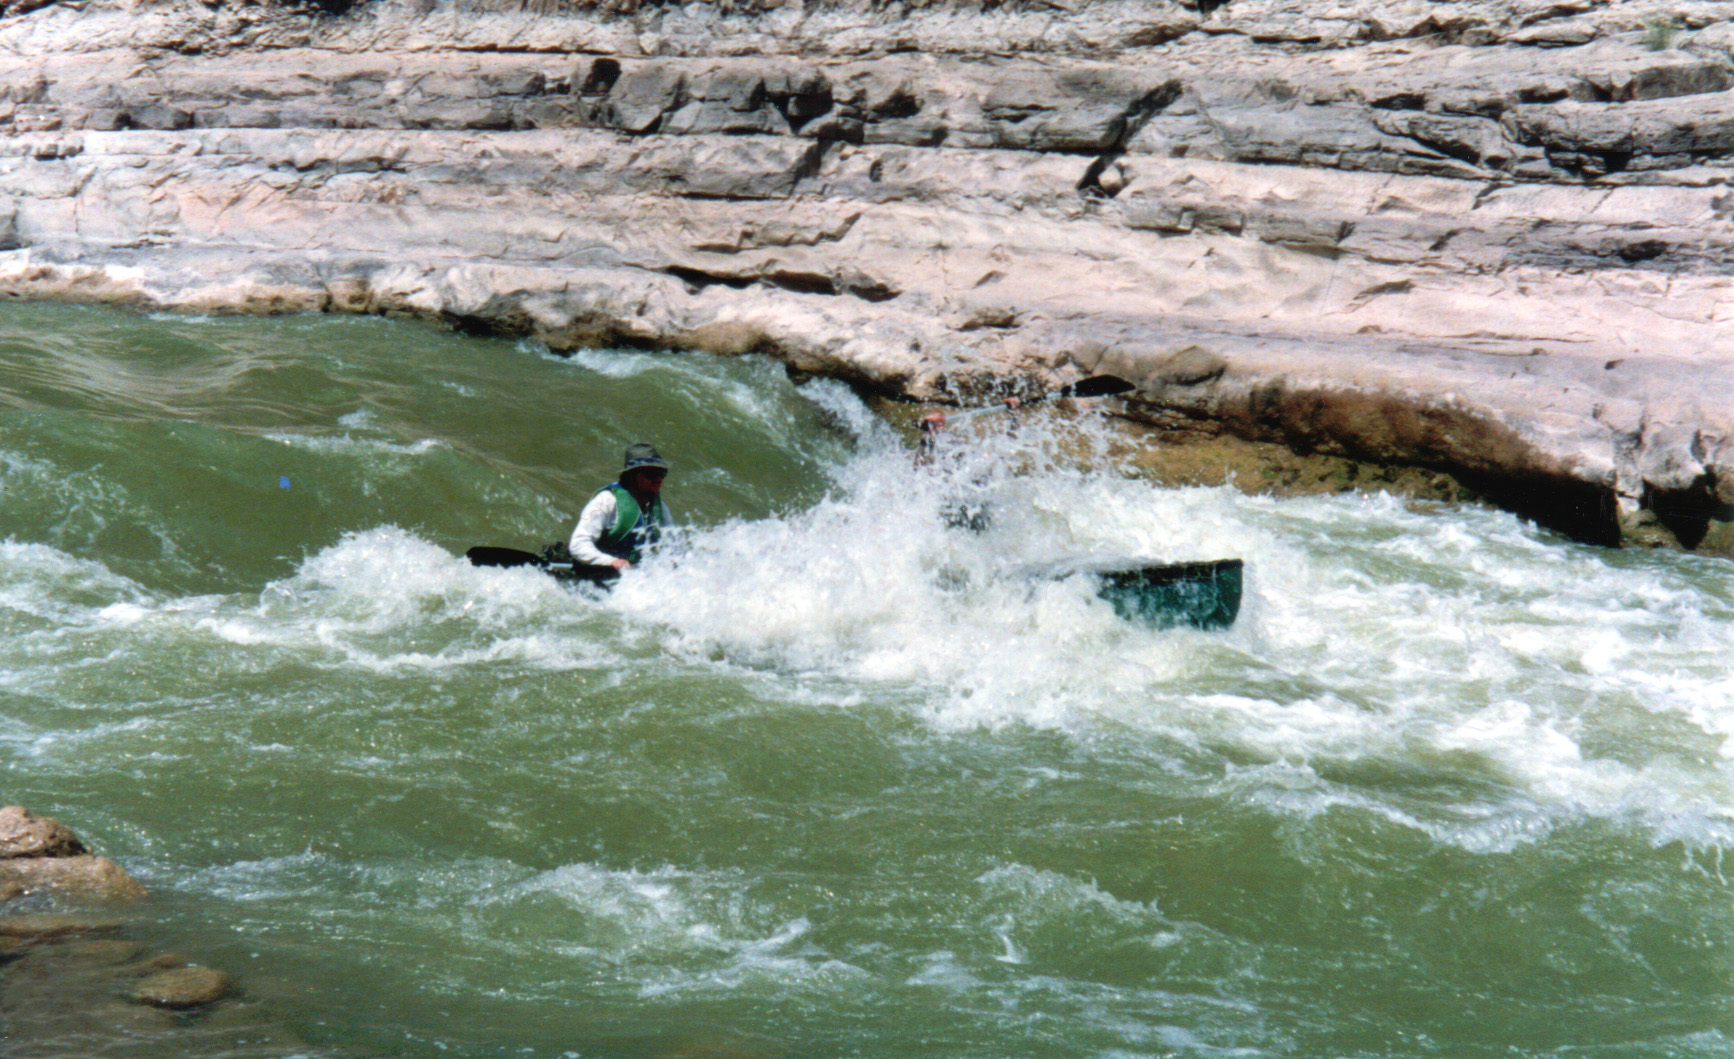 Lower Canyons - Rodeo Rapids